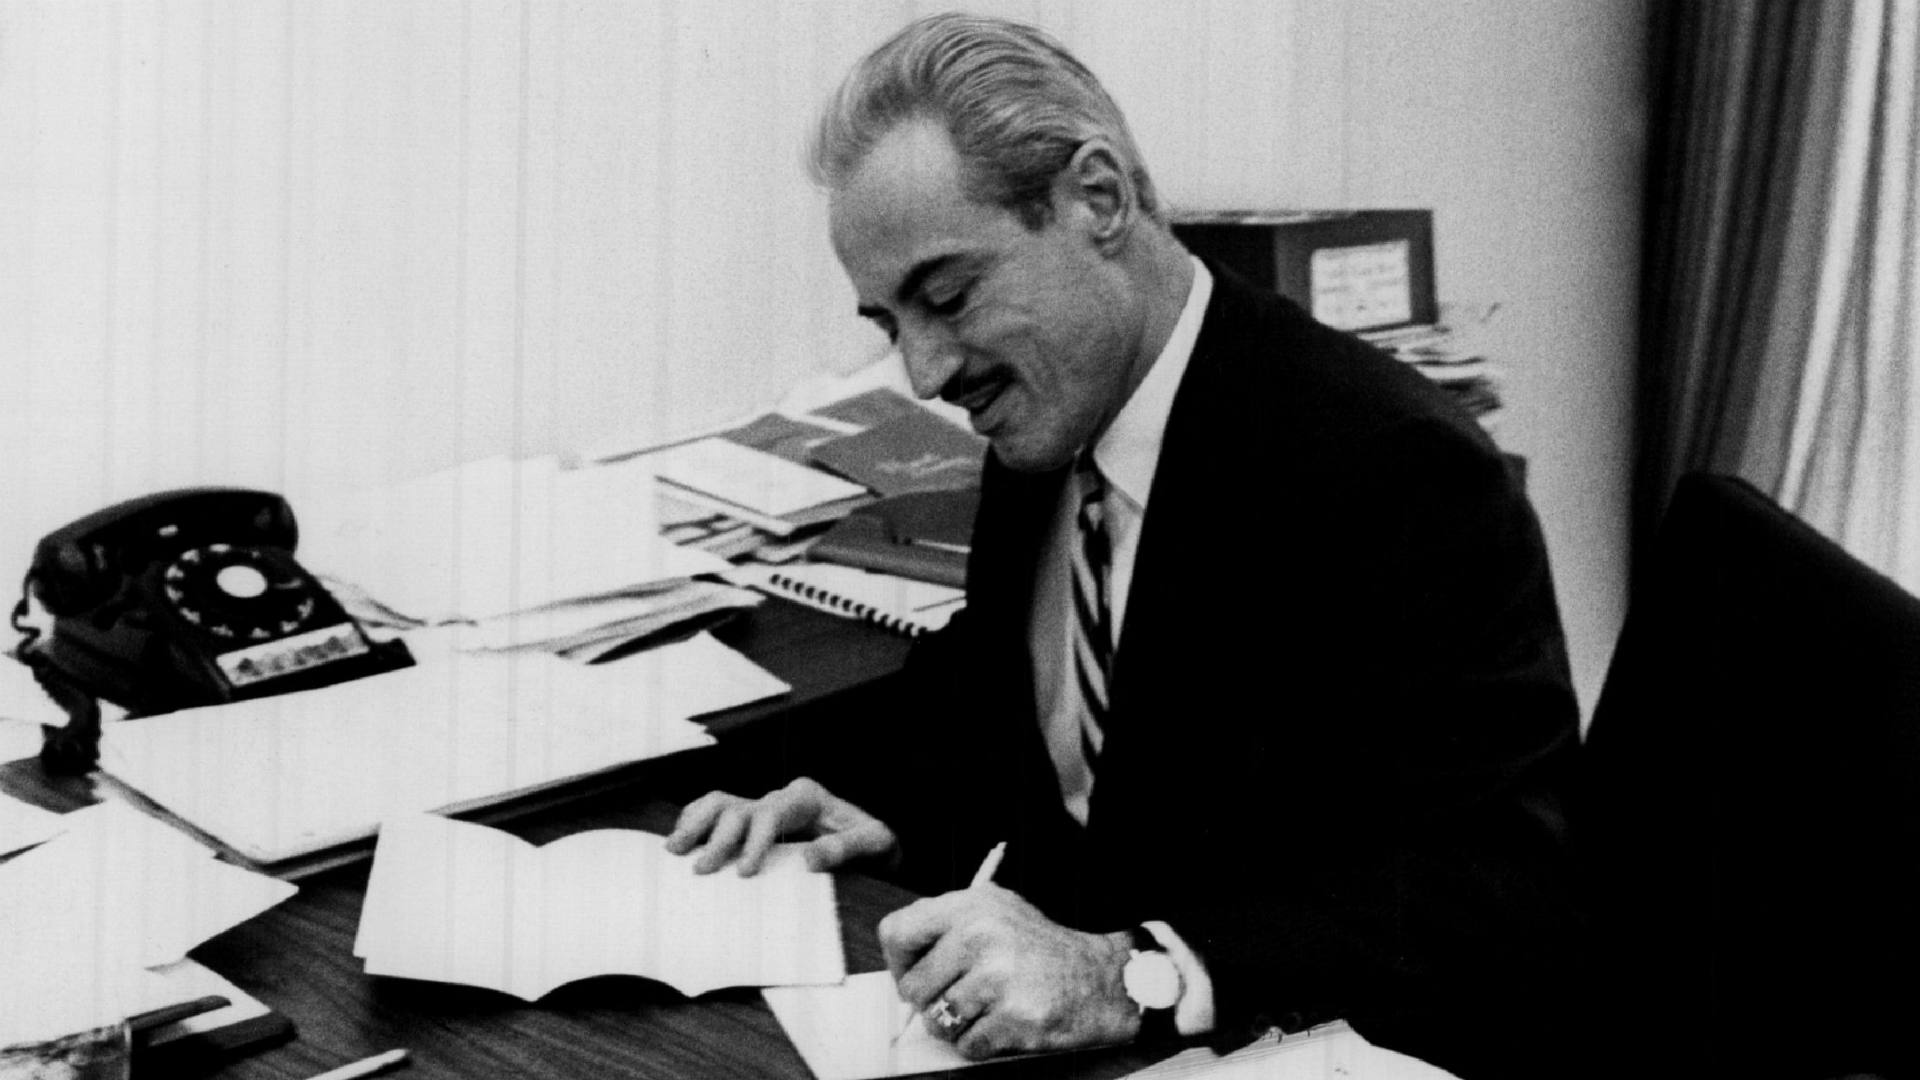 Are baseball players happy? A personal memory of Marvin Miller